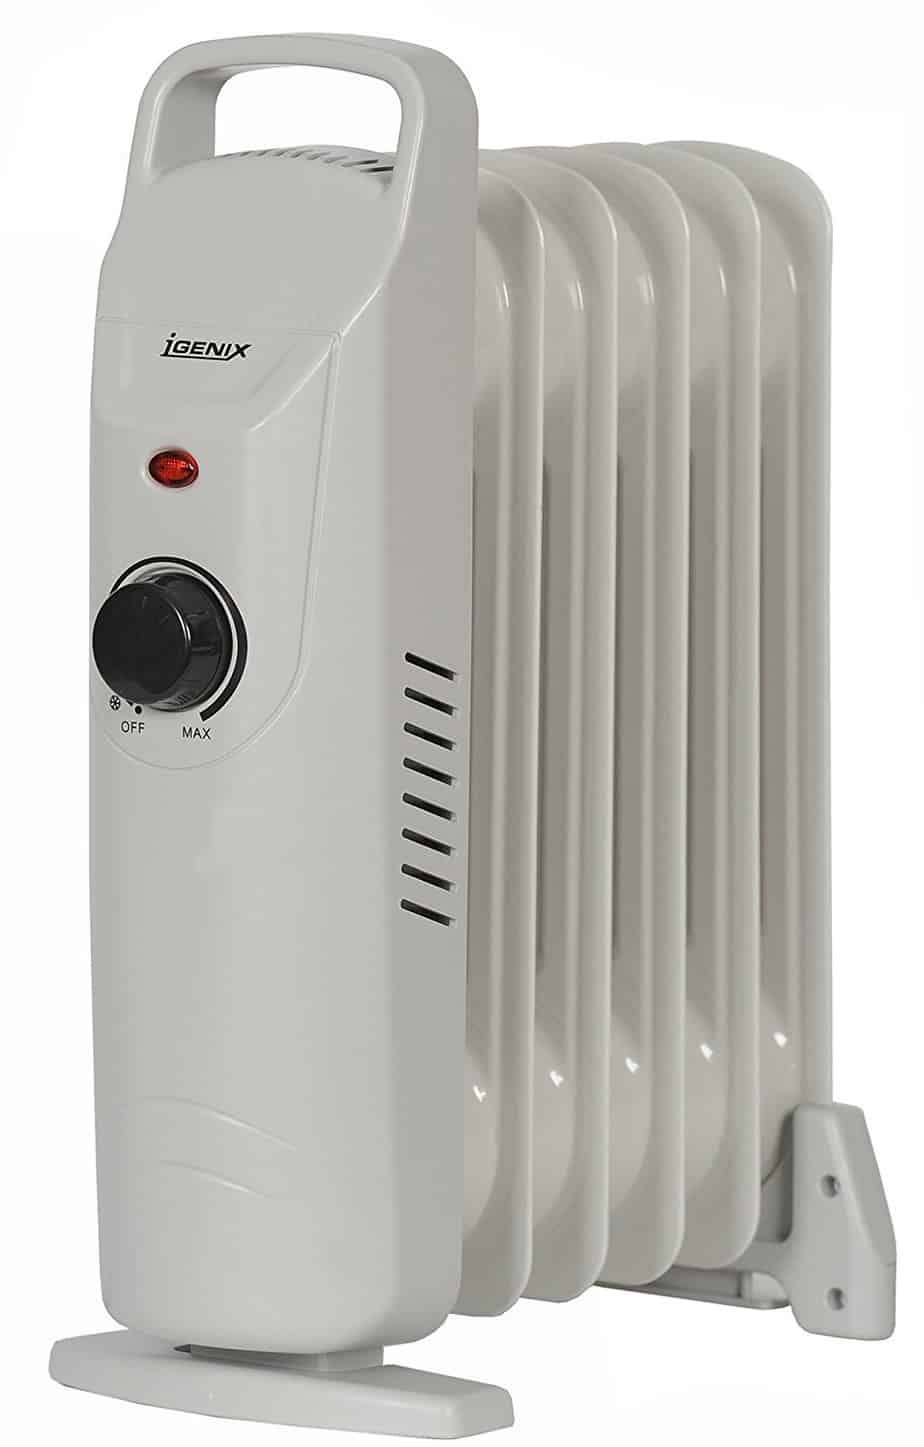 Igenix IG0500 Baby Oil Filled Radiator, 0.5 kW - Grey